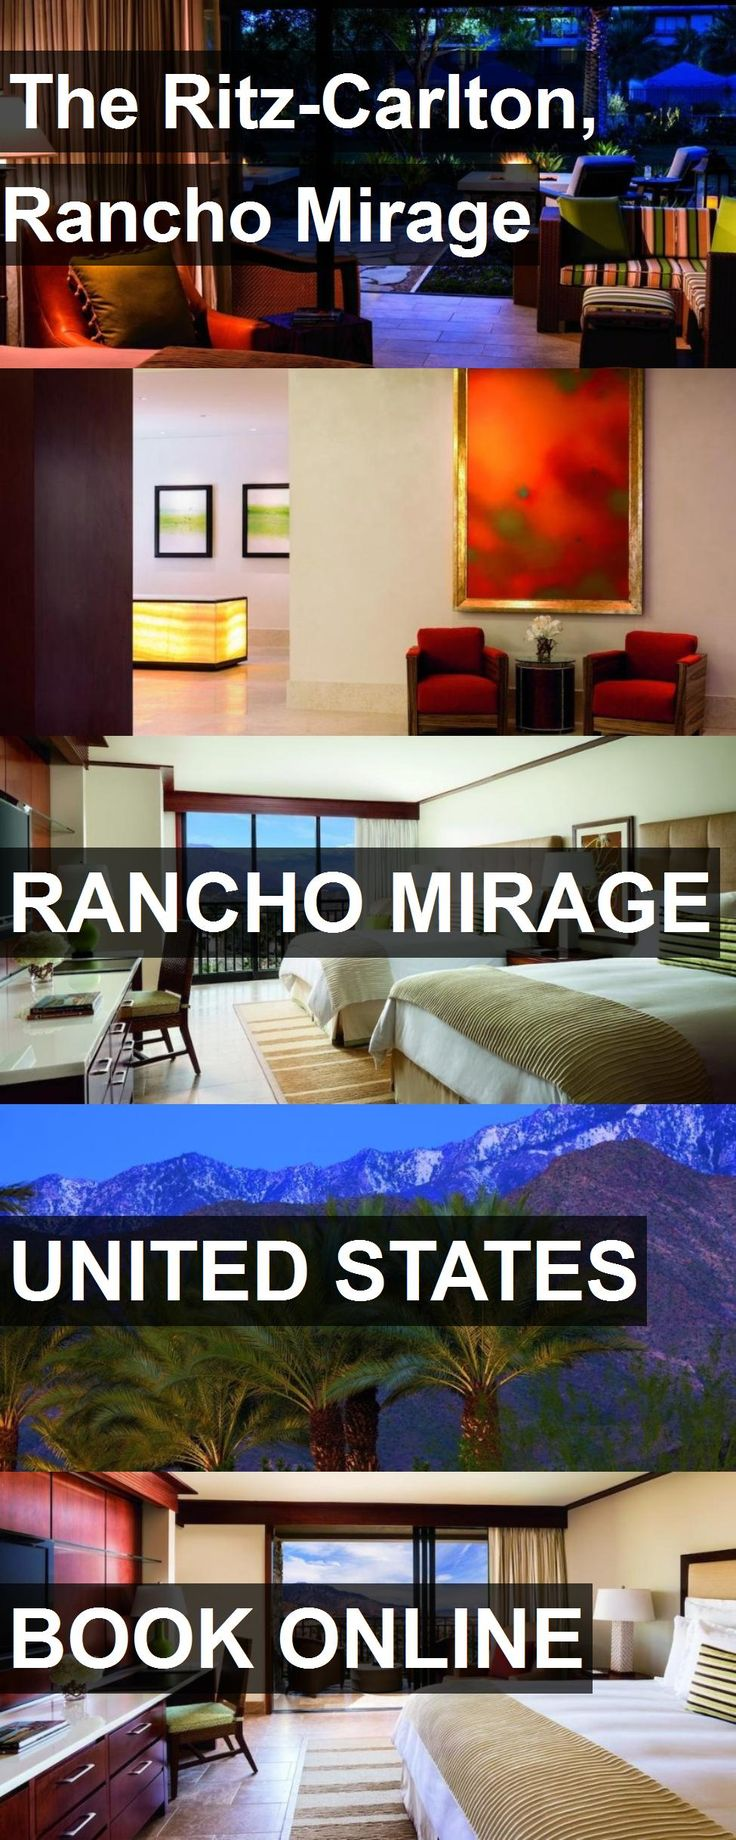 California Map Rancho Mirage%0A Hotel The RitzCarlton  Rancho Mirage in Rancho Mirage  United States  For